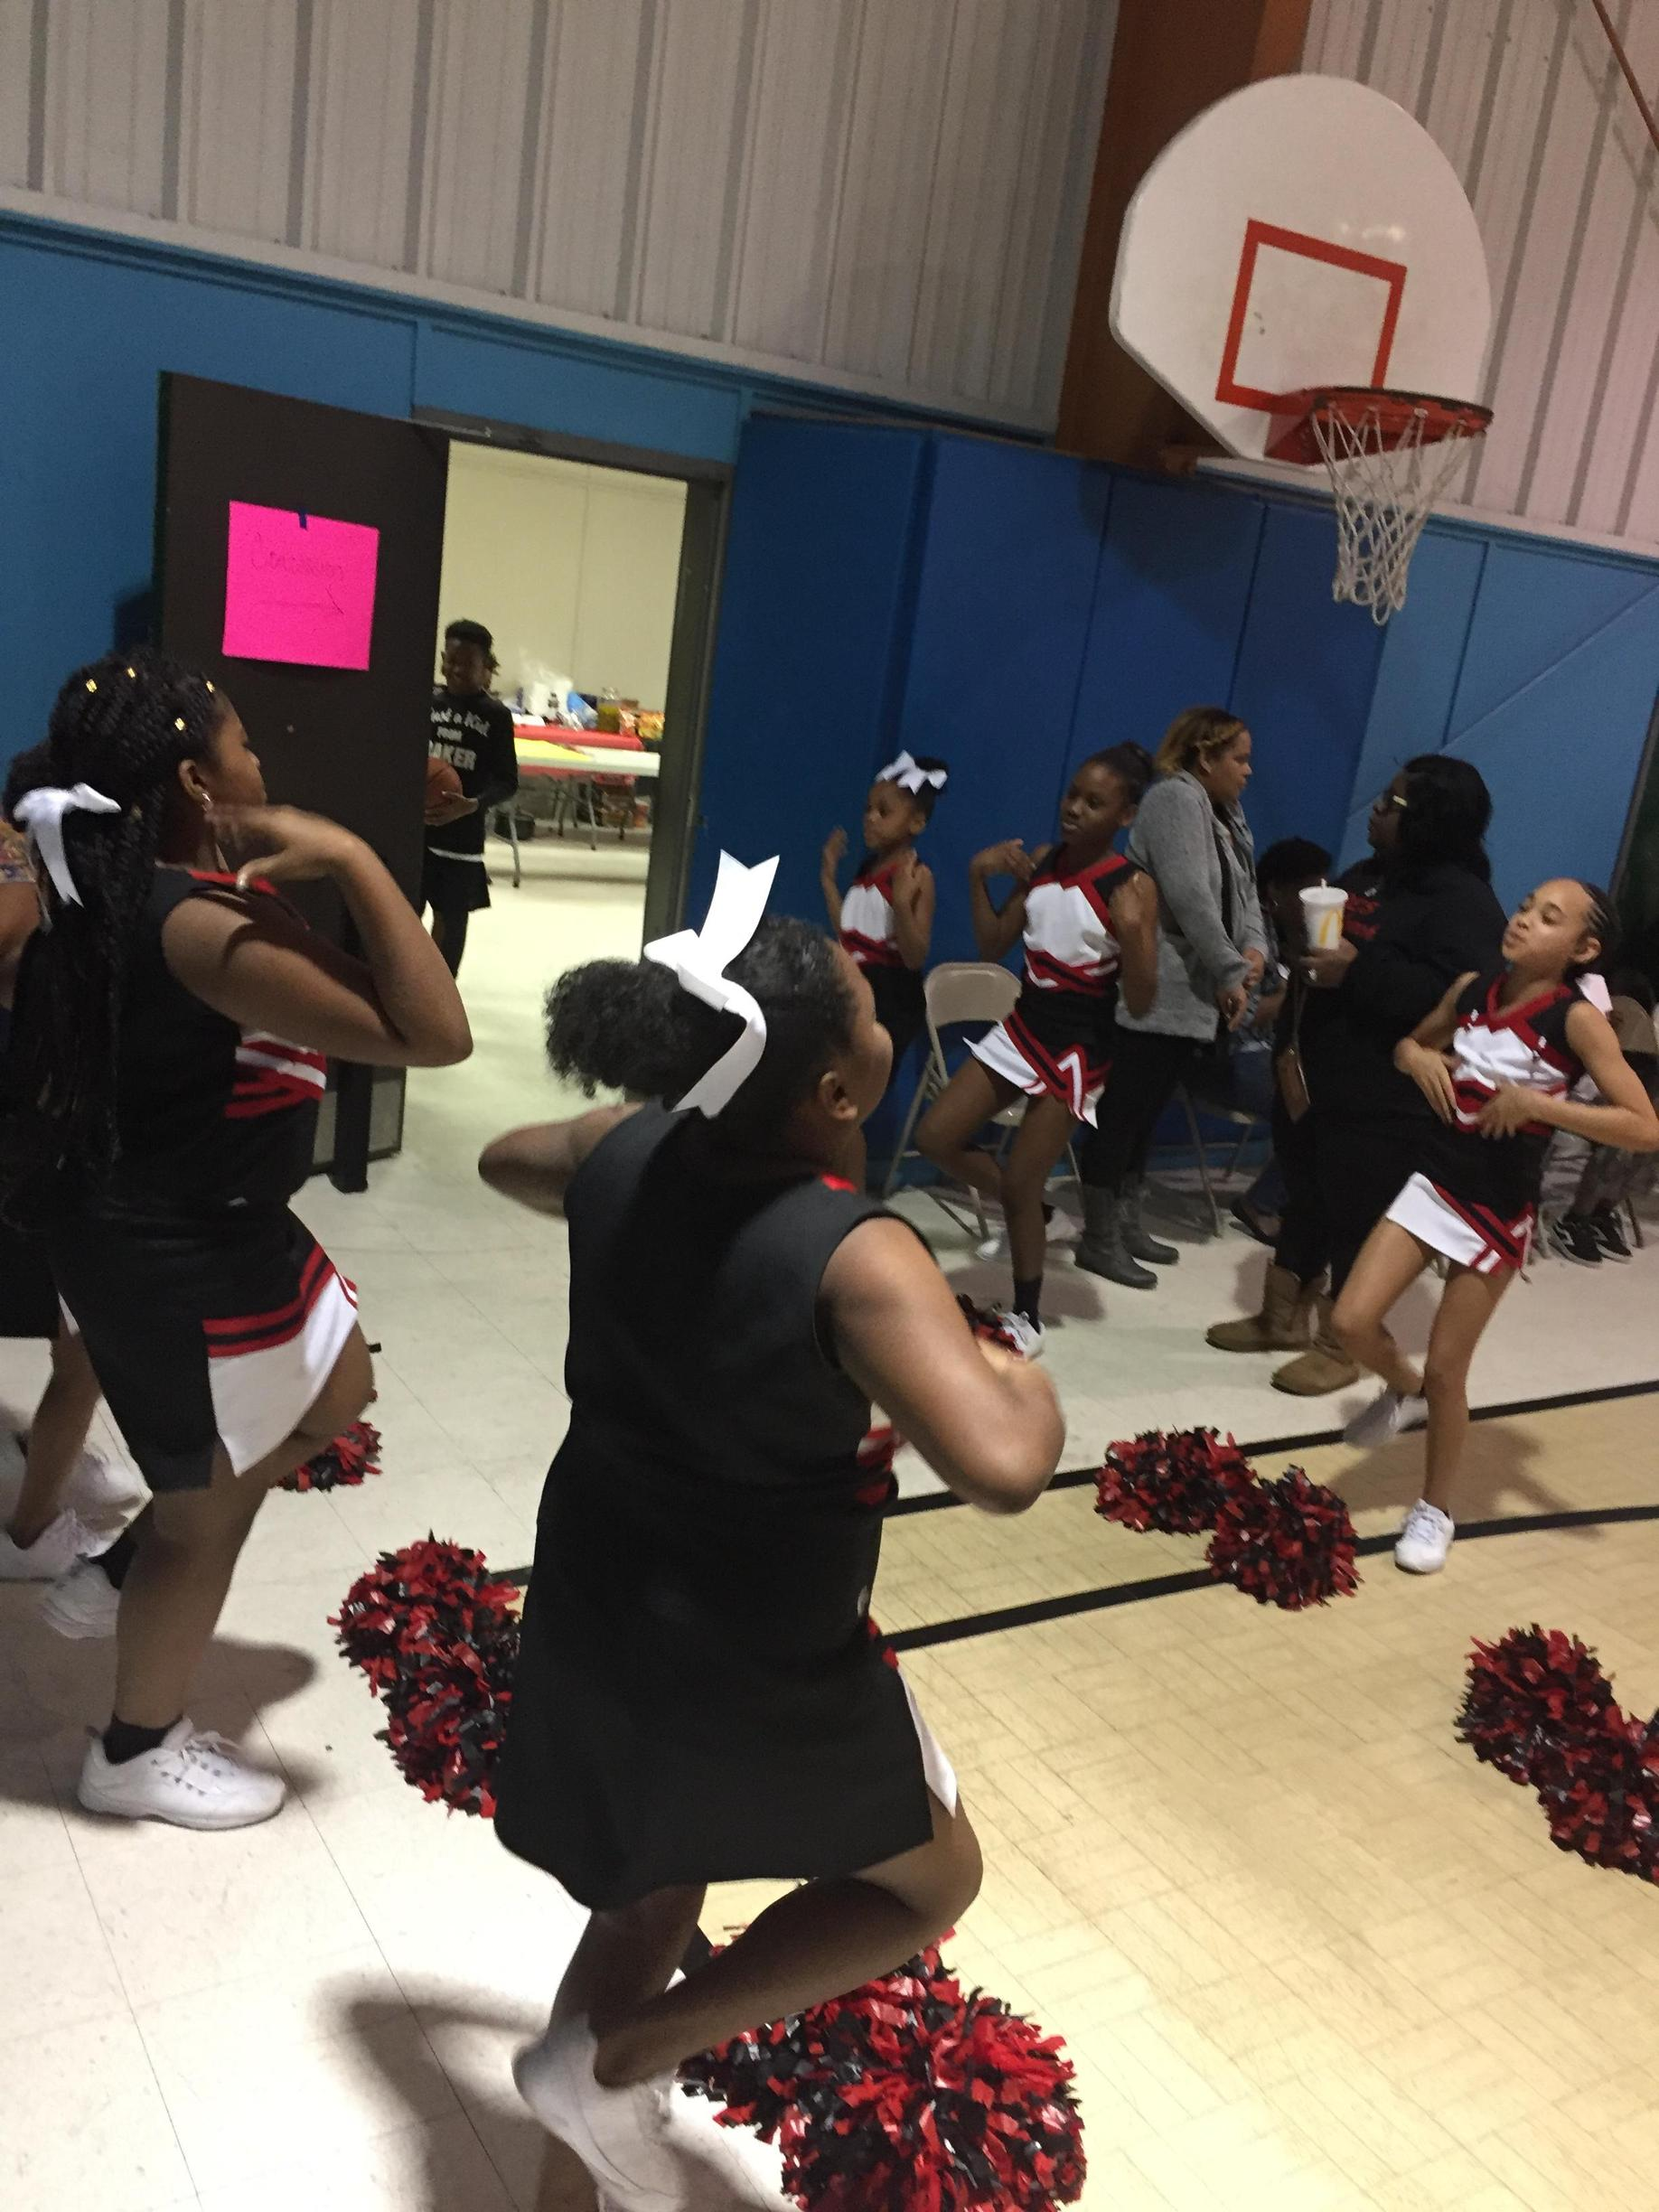 A photo of Bakerfield & Baker Heights Basketball Team In Action with Cheerleaders